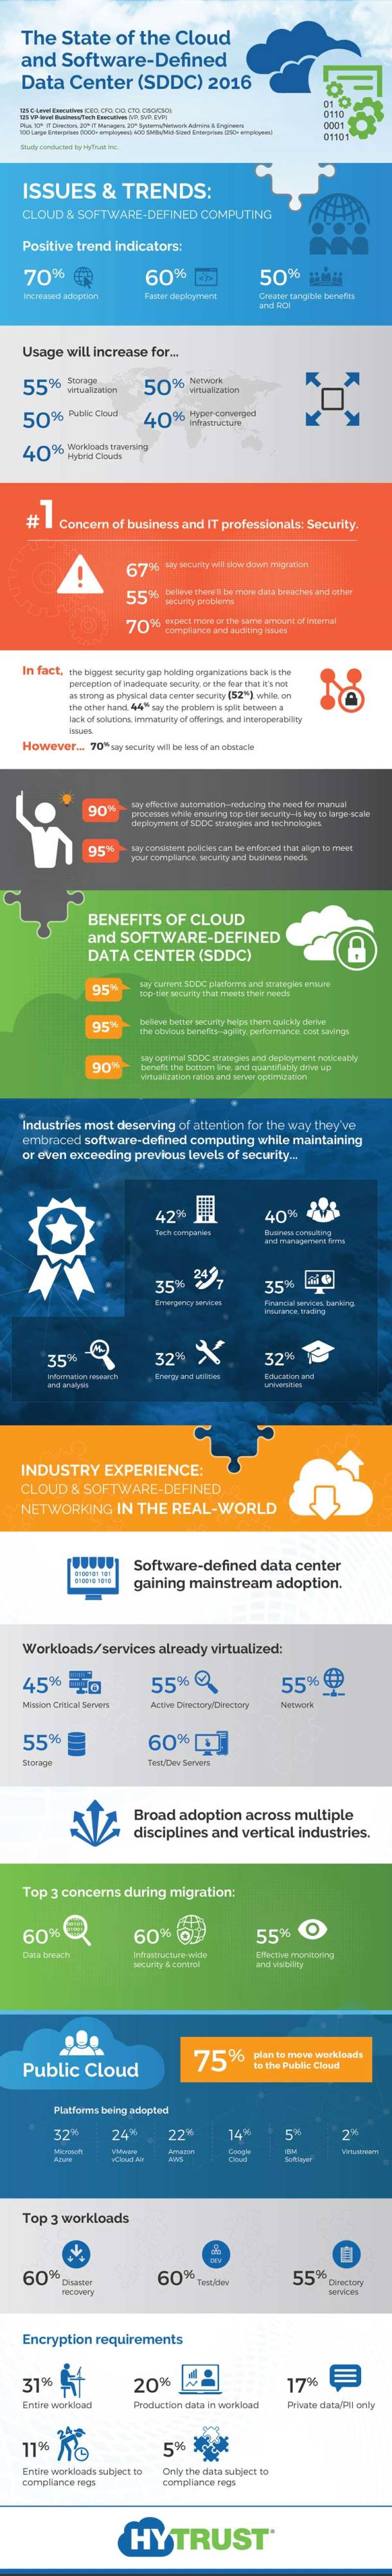 2016 State of the Cloud and SDDC Study (Infographic)